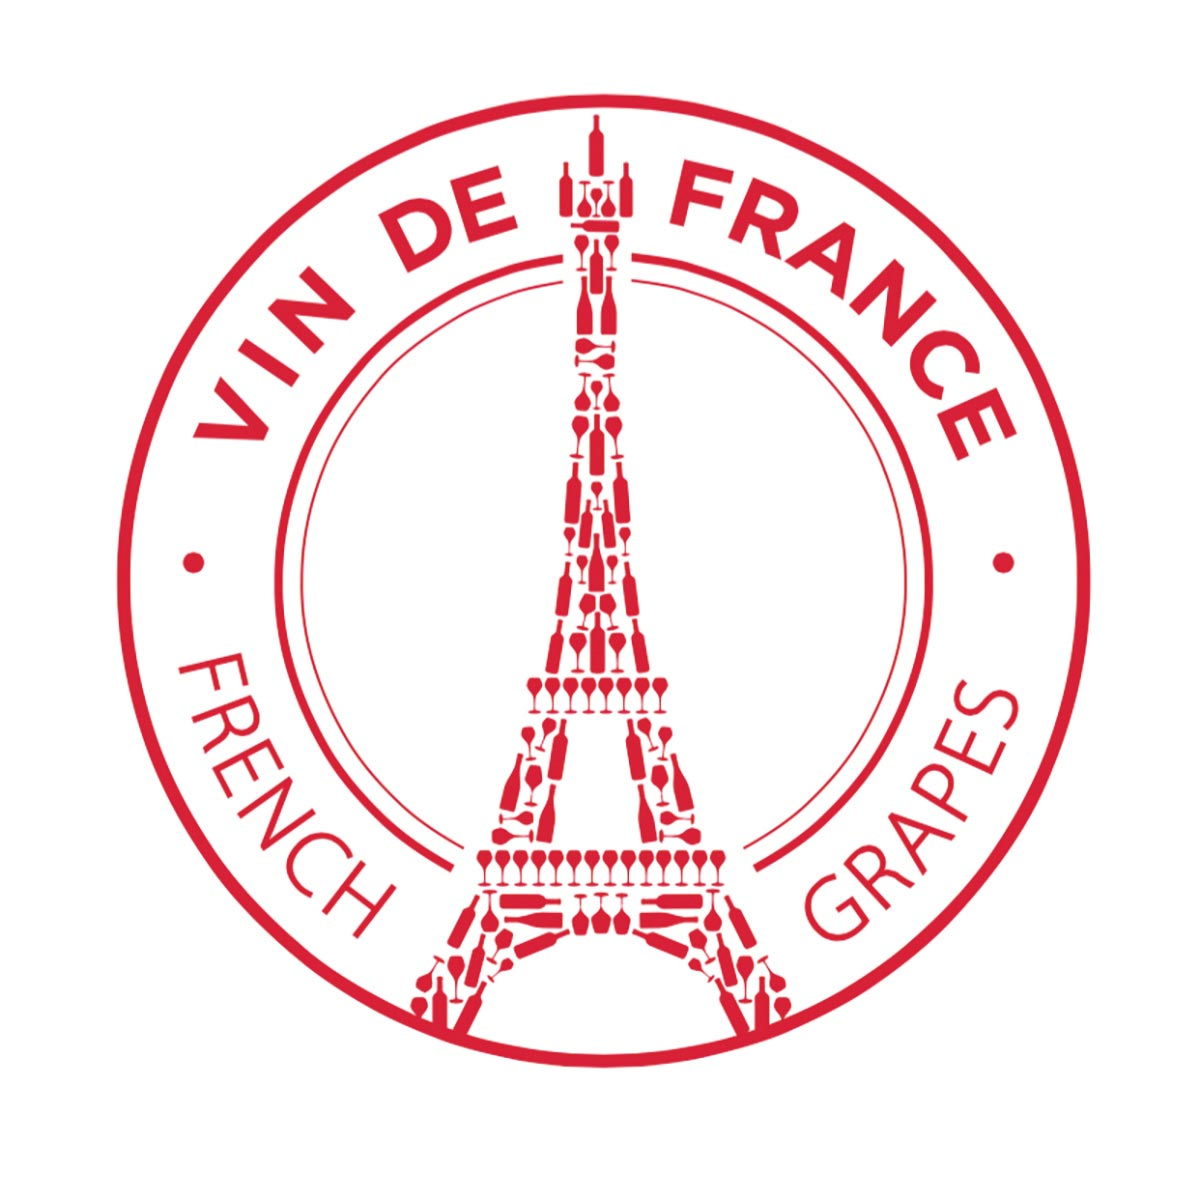 Vin de France Posts Growth in Half Yearly Numbers for 2018